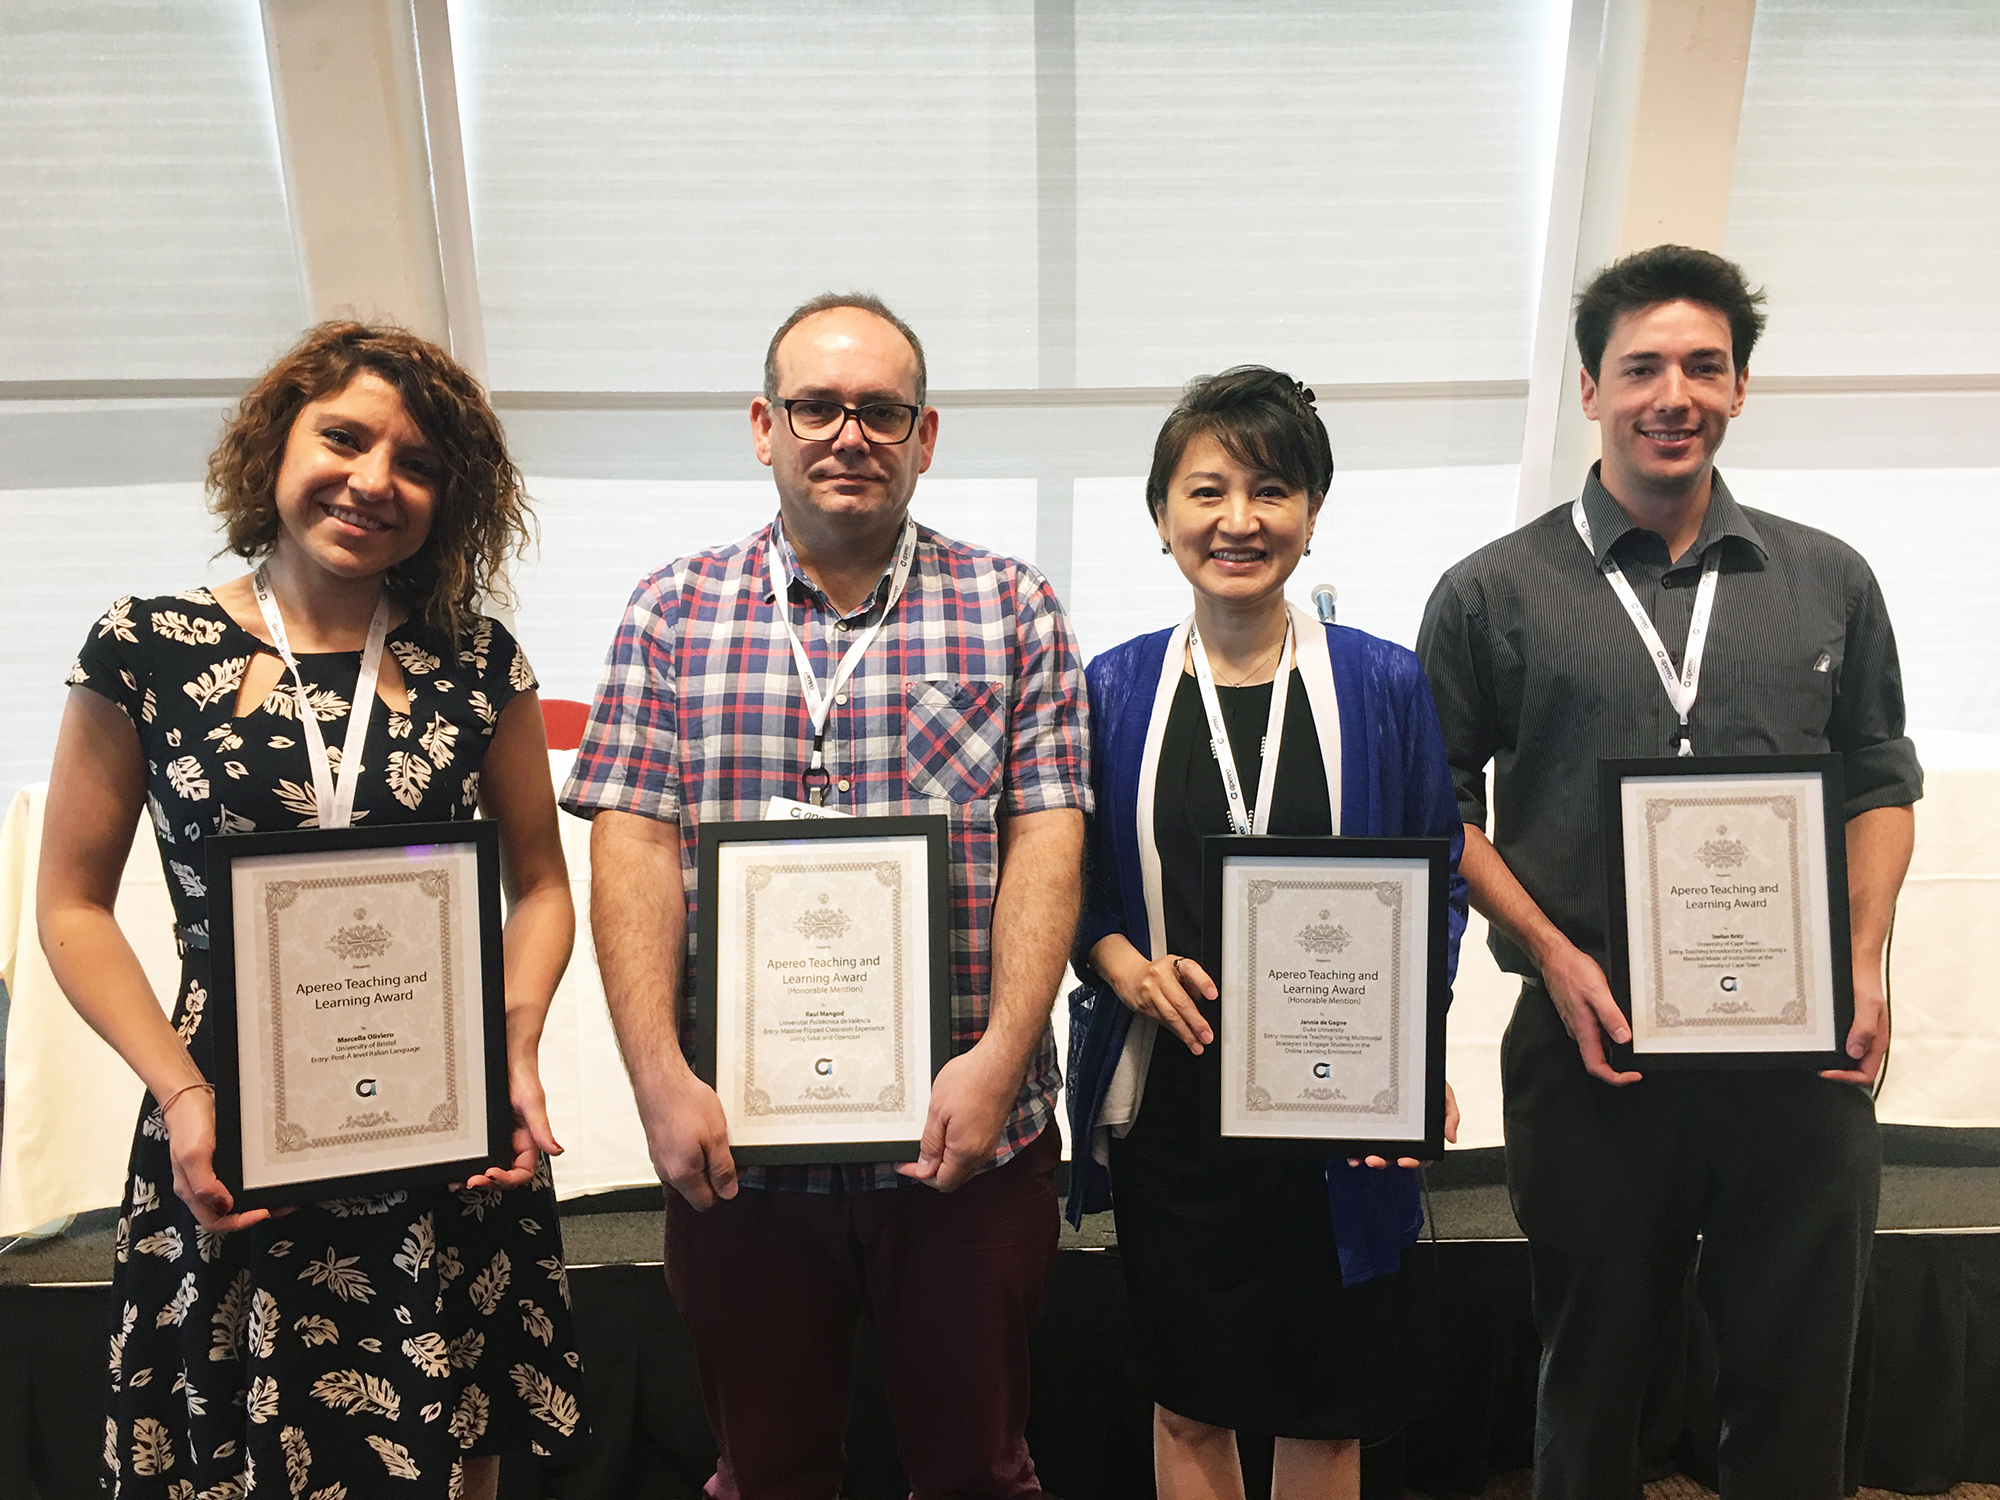 Left to right in the photo: Marcella Oliviero, Raul Mengod, Jennie De Gagne, and Stephan Britz Not present in the photo: Andrea Zhok, Leanne Scott, Alexander Nagurney, Patrick Smith, and Carlos Turro (Photo taken in the Award Recognition Ceremony in Open Apereo 2016 Conference in New York Univeristy, New York City, USA)